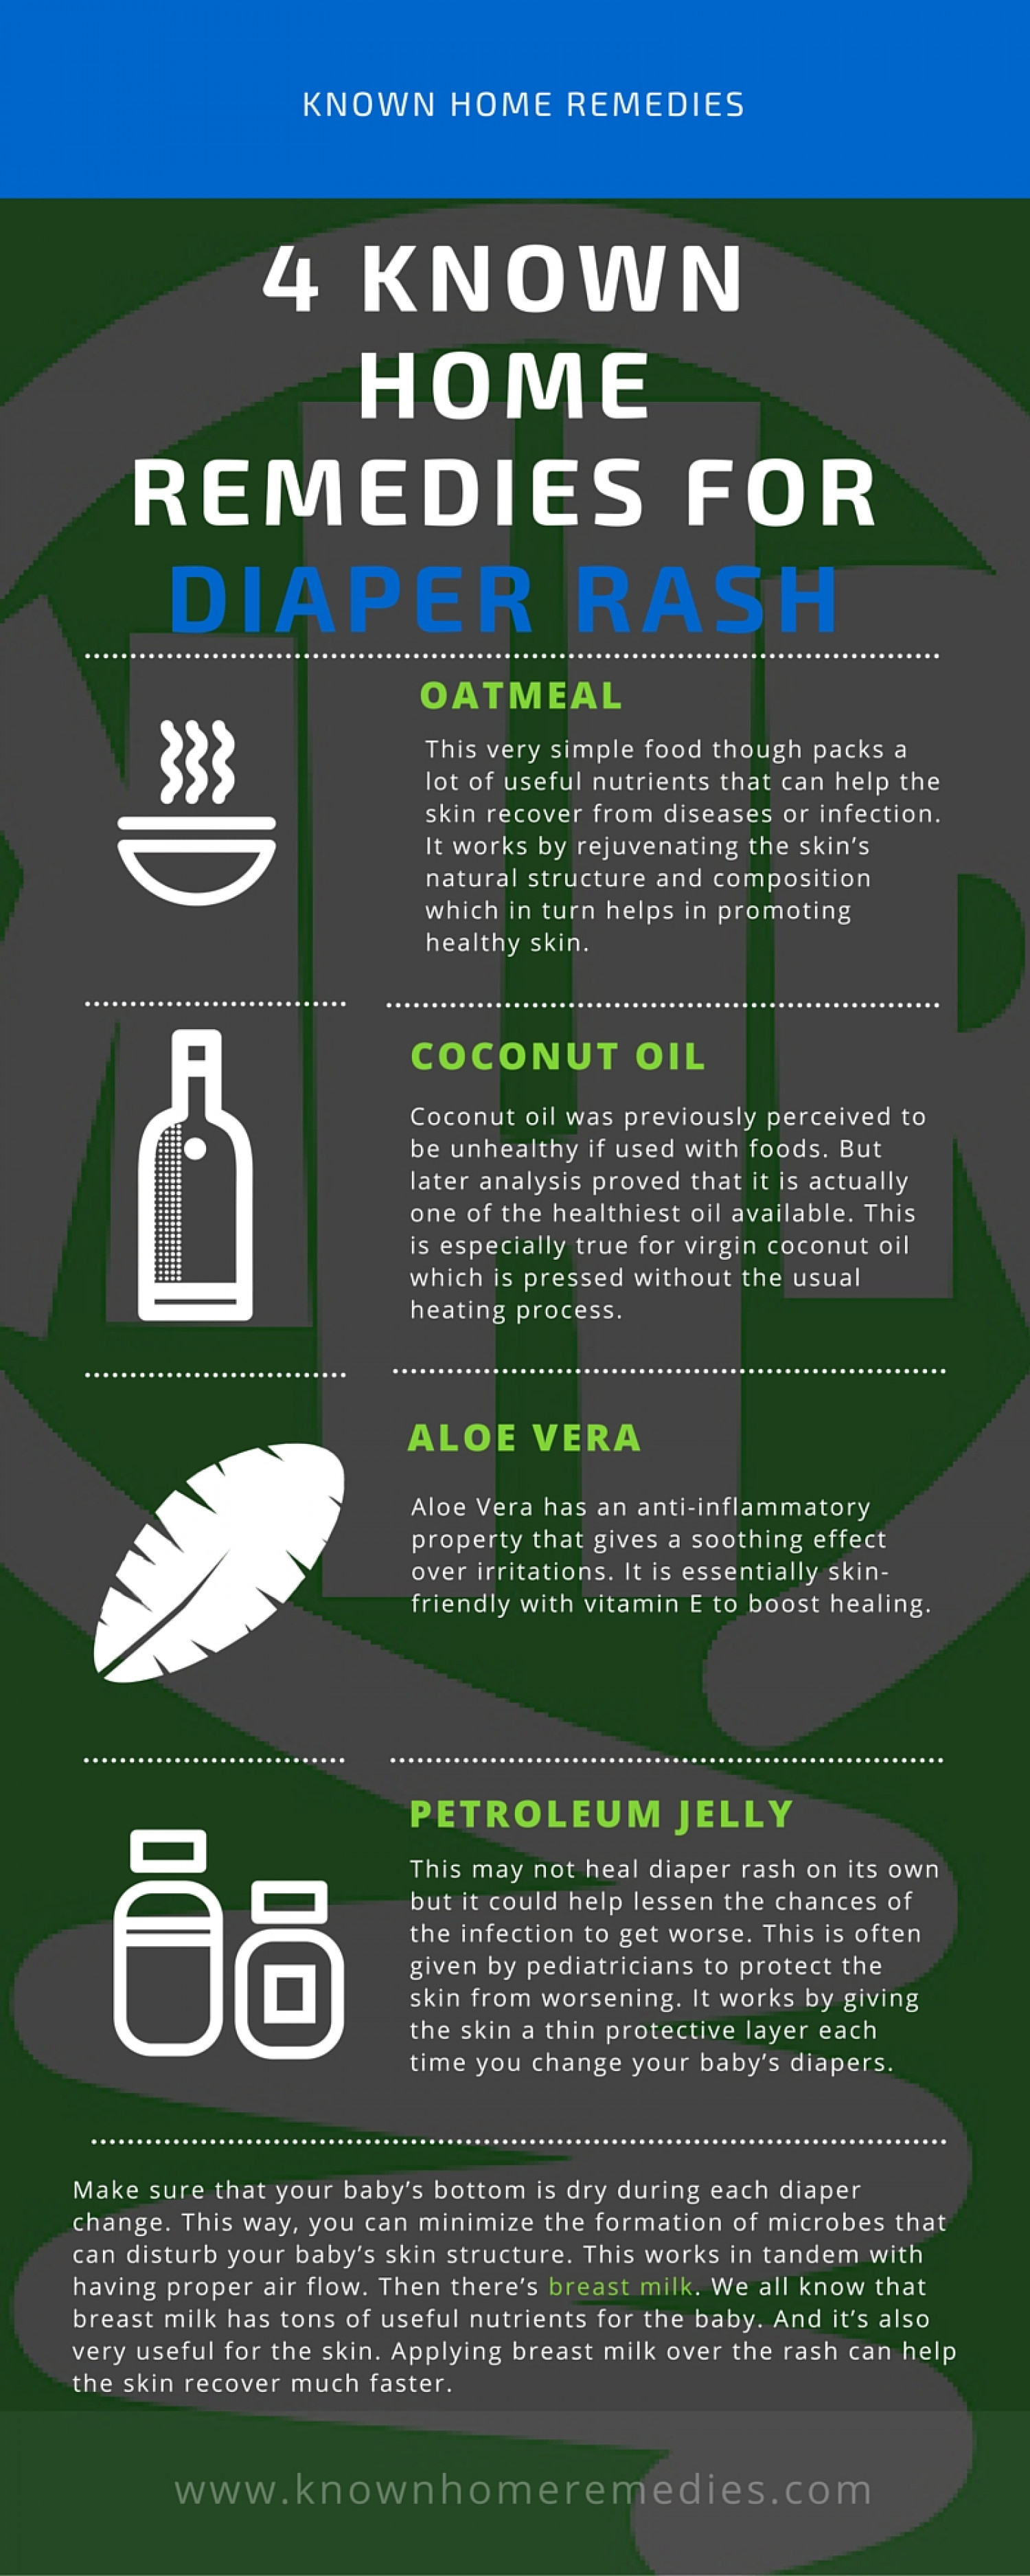 4 Known Home Remedies for Diaper Rash Infographic